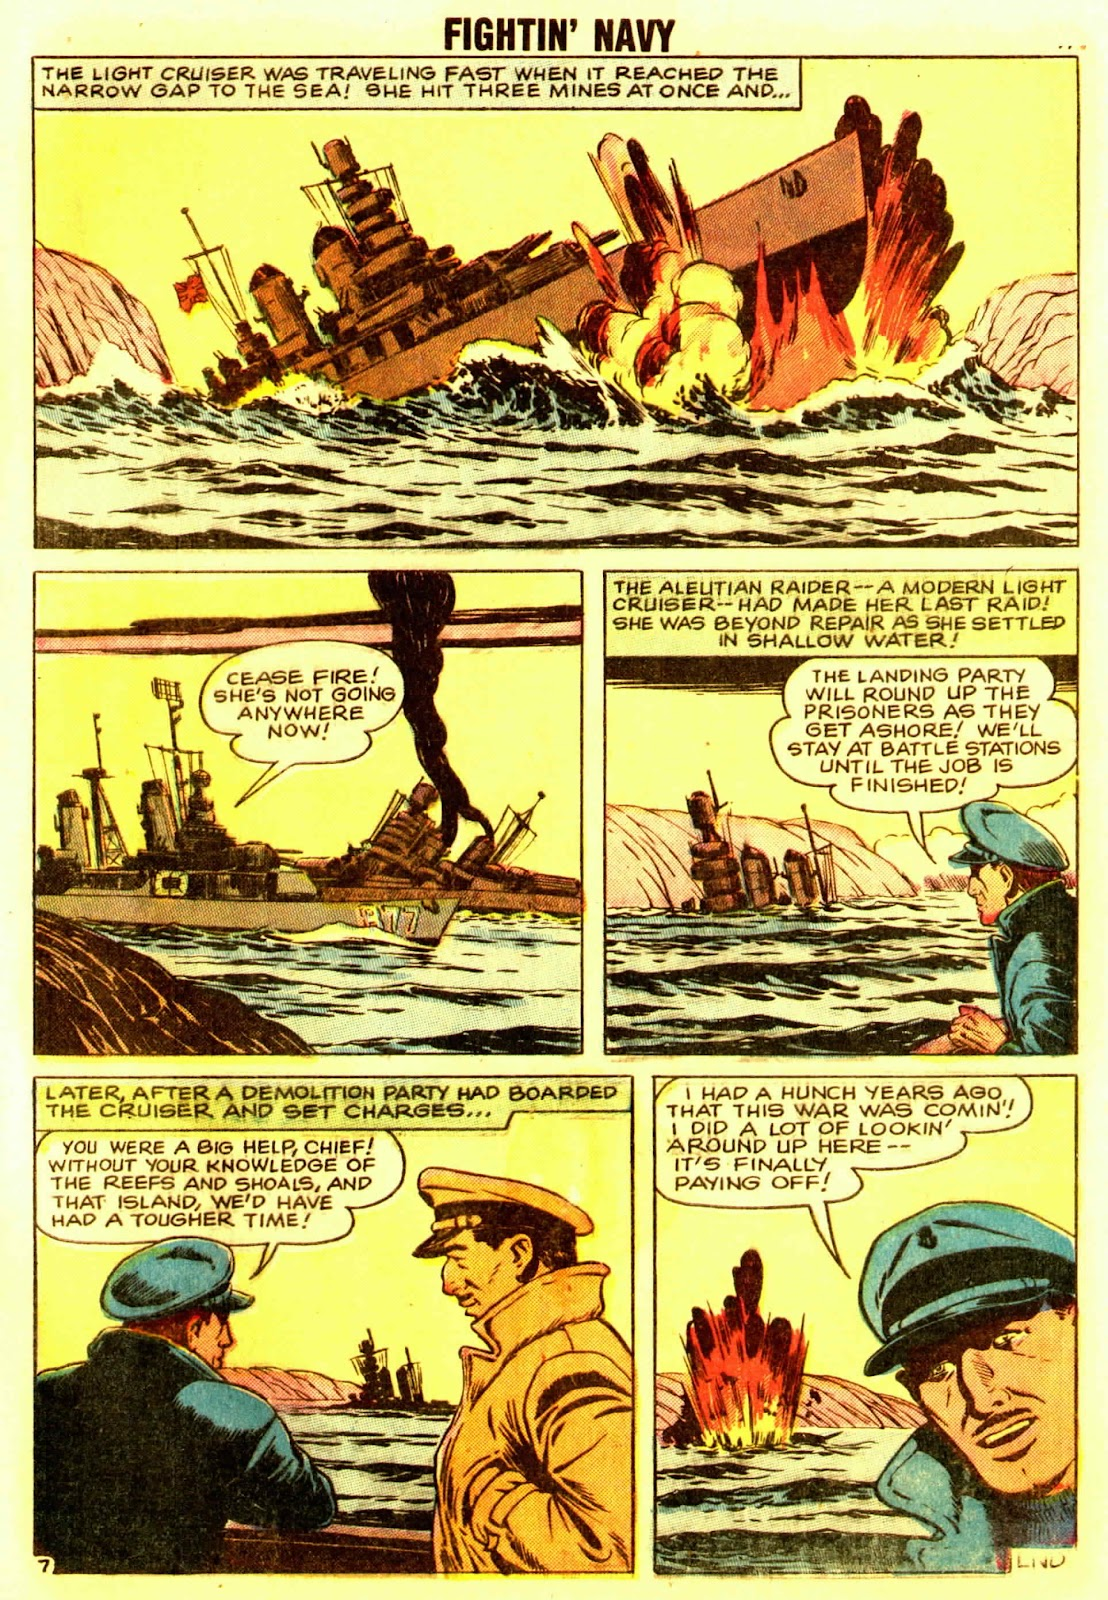 Read online Fightin' Navy comic -  Issue #83 - 73